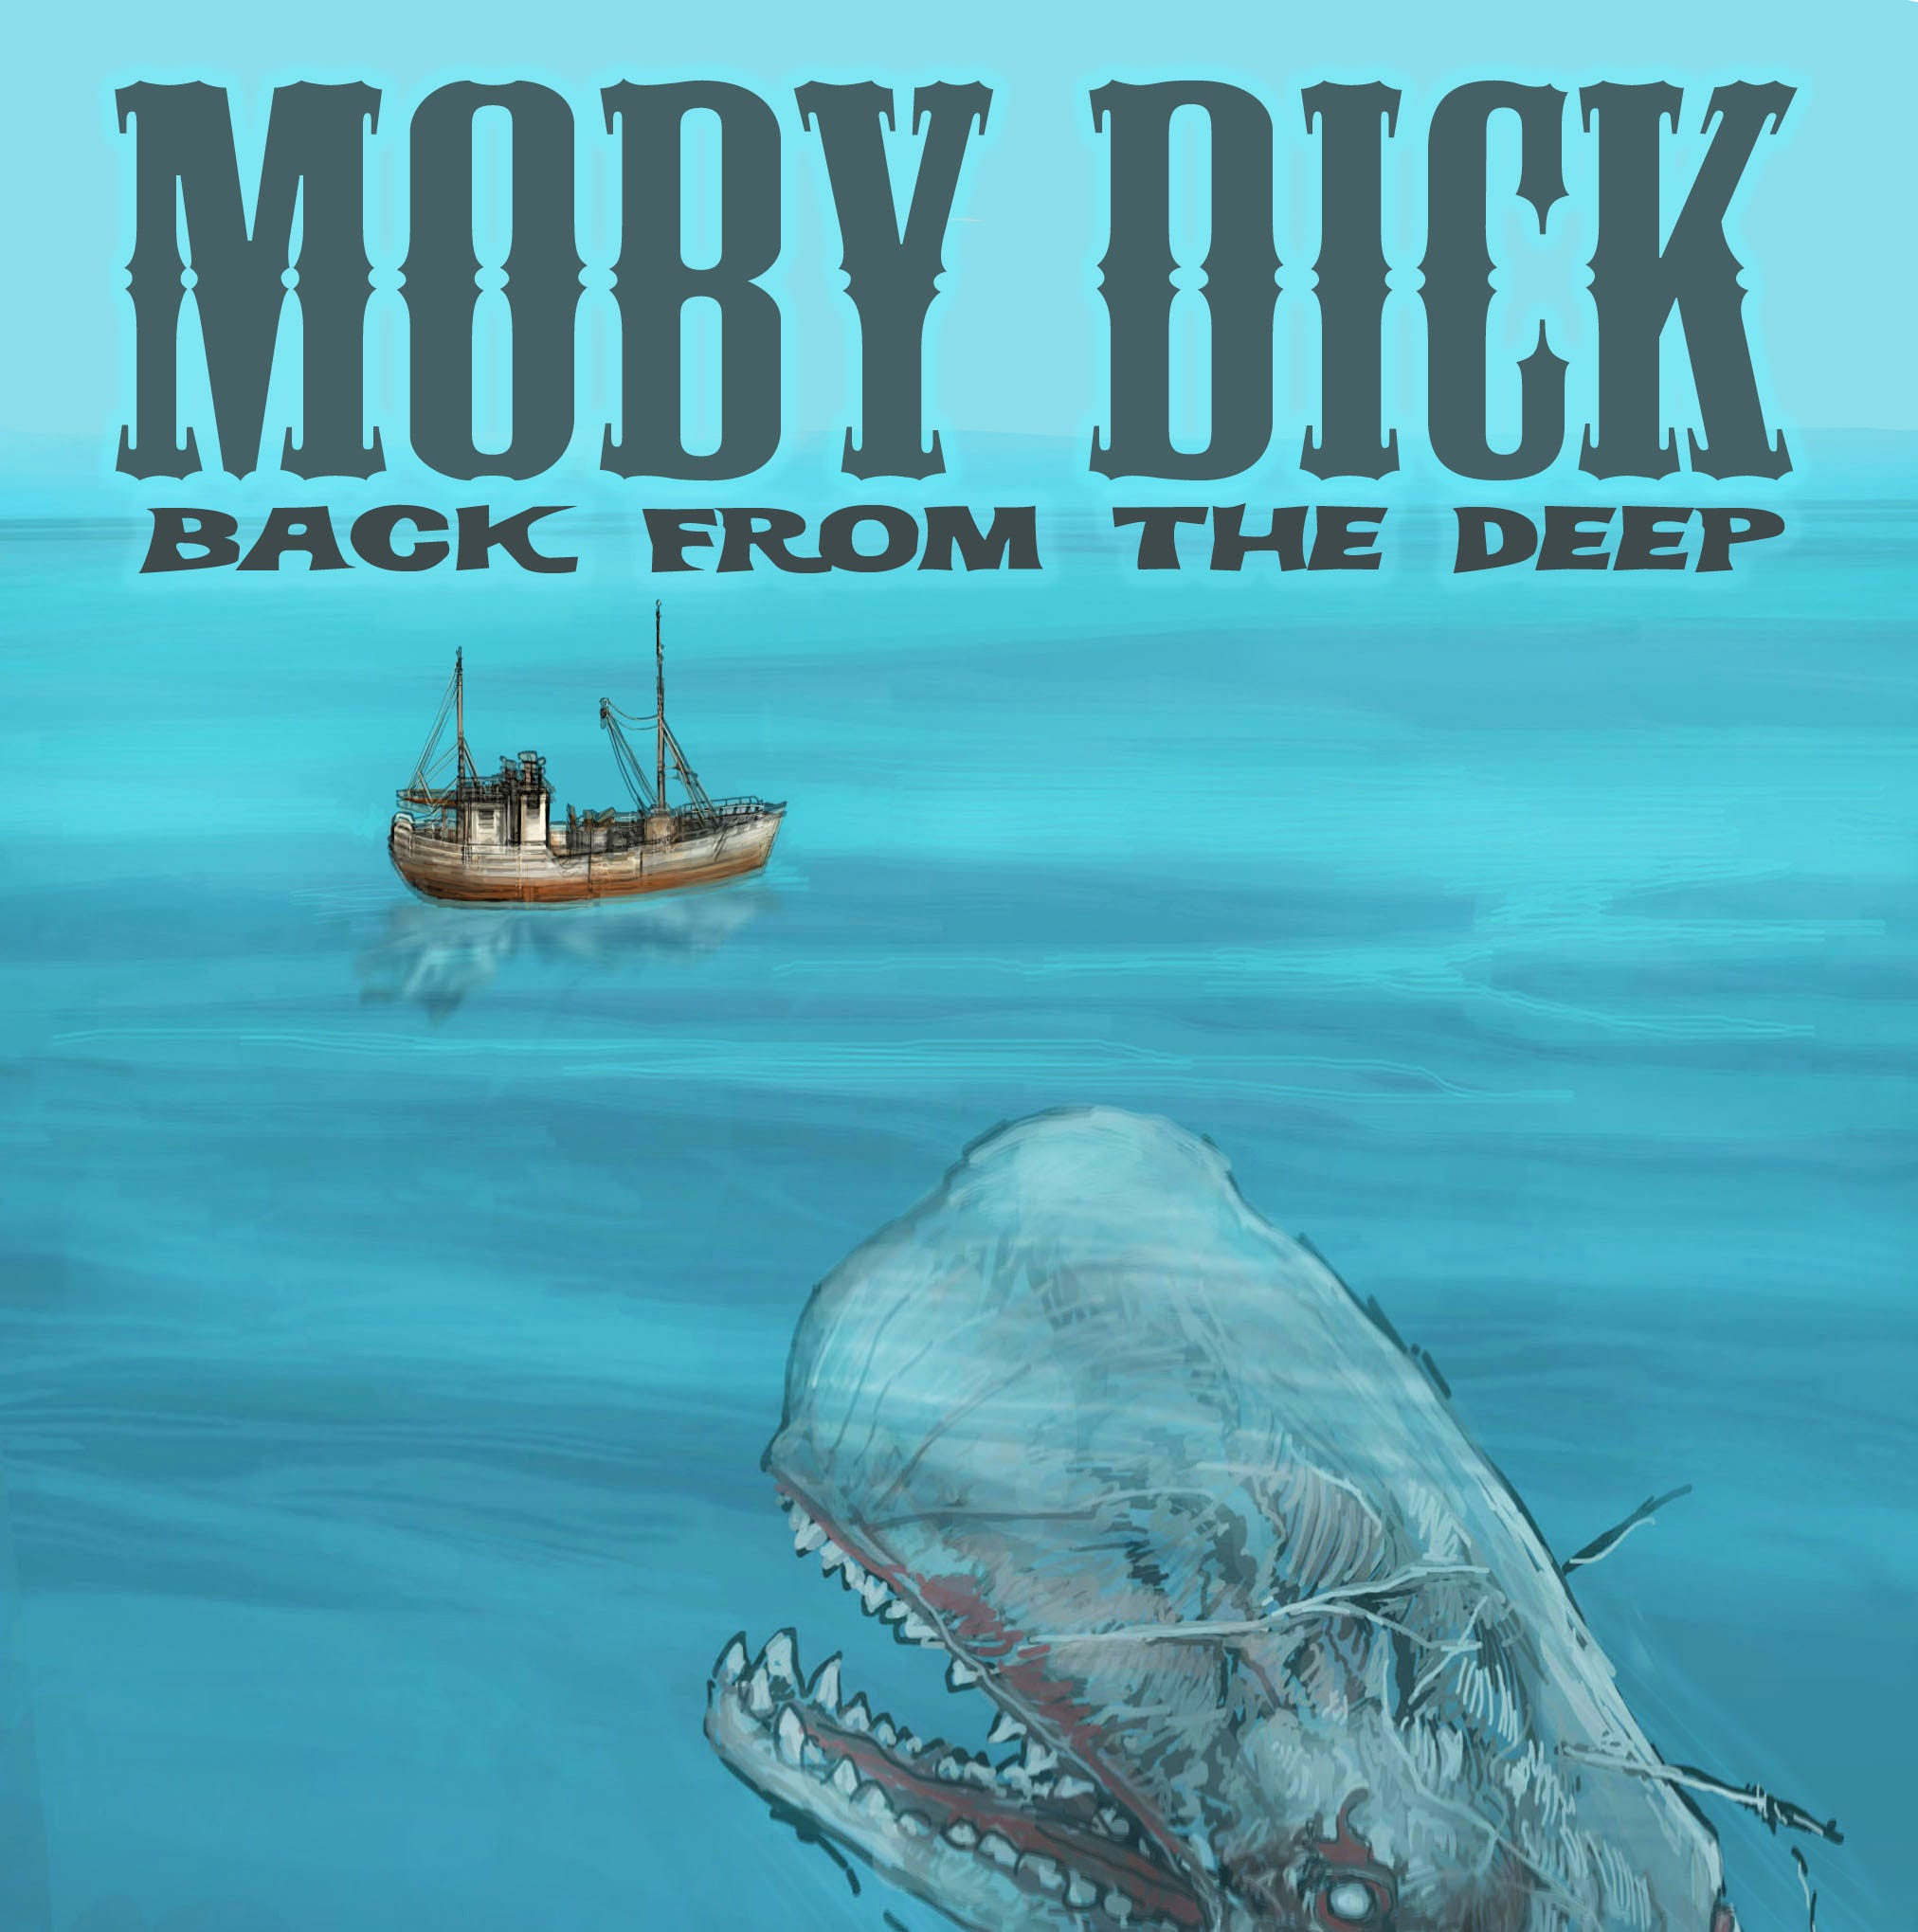 Moby Dick gets spooky in comic book by Clarksville writer